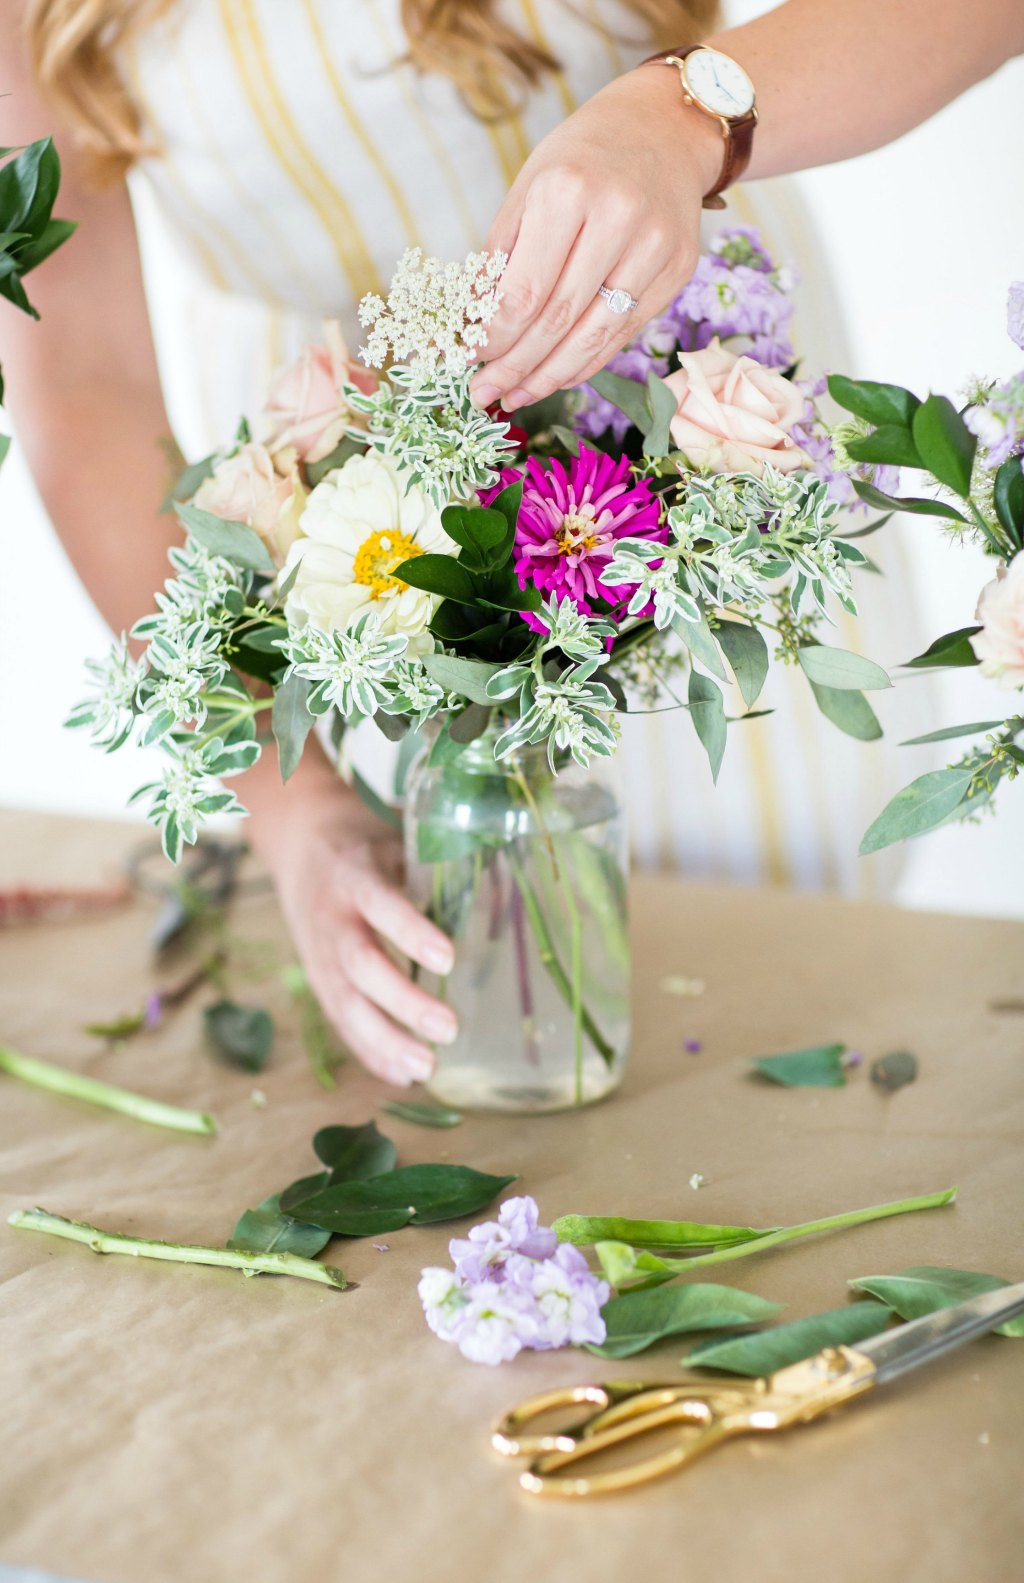 how-to-style-a-simple-flower-arrangement-rose-city-style-guide-bourbon-rose-floral-design-co-lifestyle-canadian-blog-16